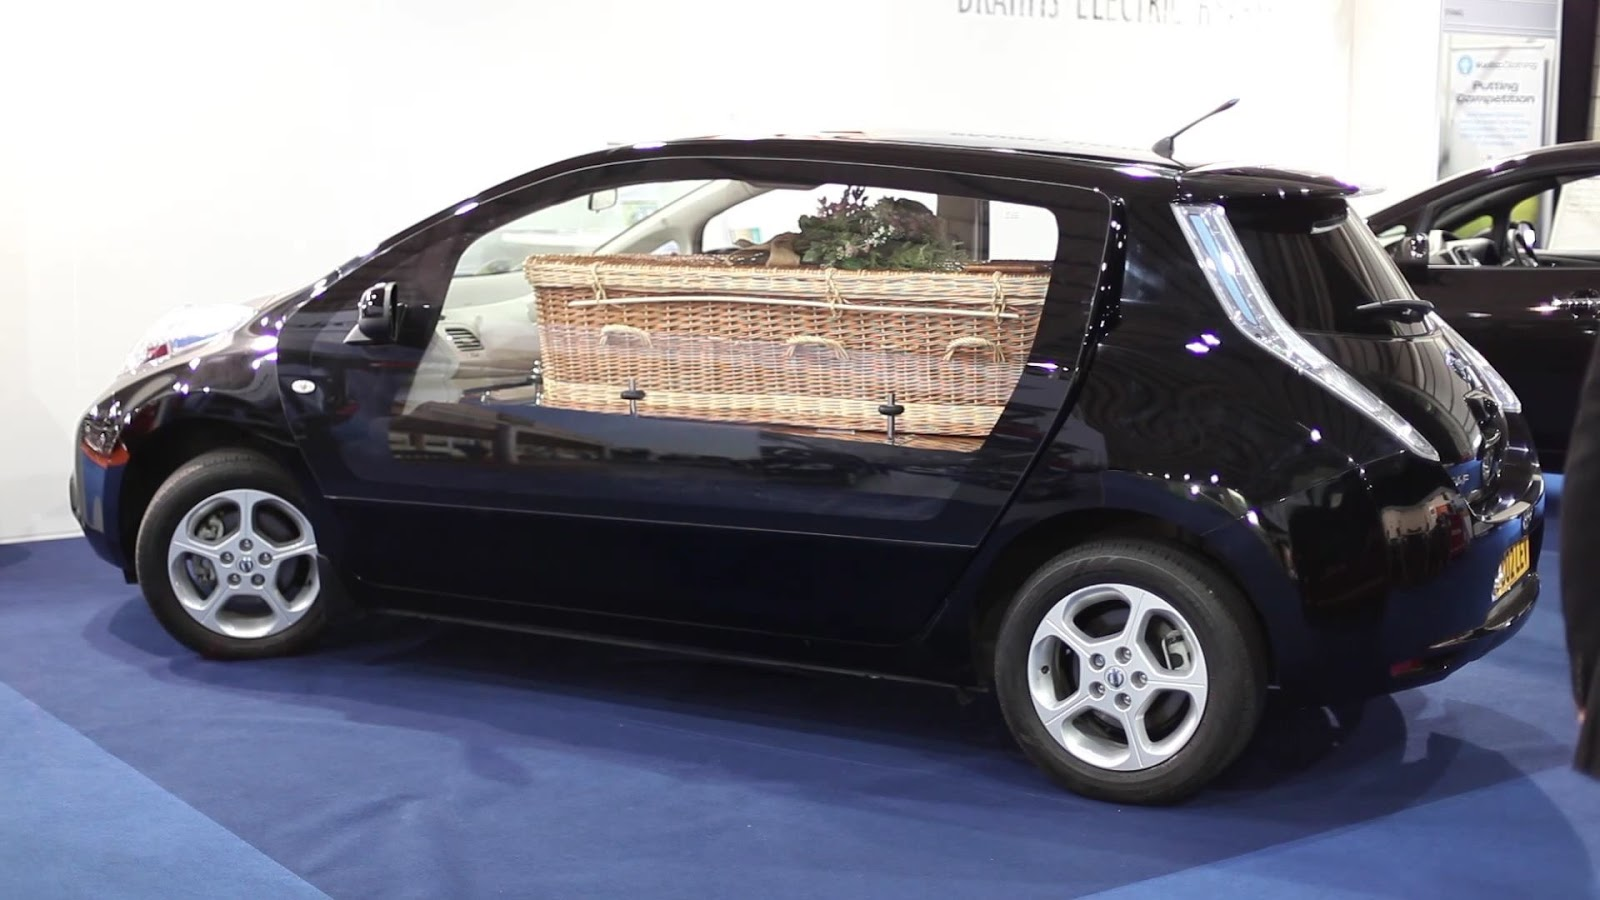 nissan-leaf-hearse-makes-sense-is-a-tad-